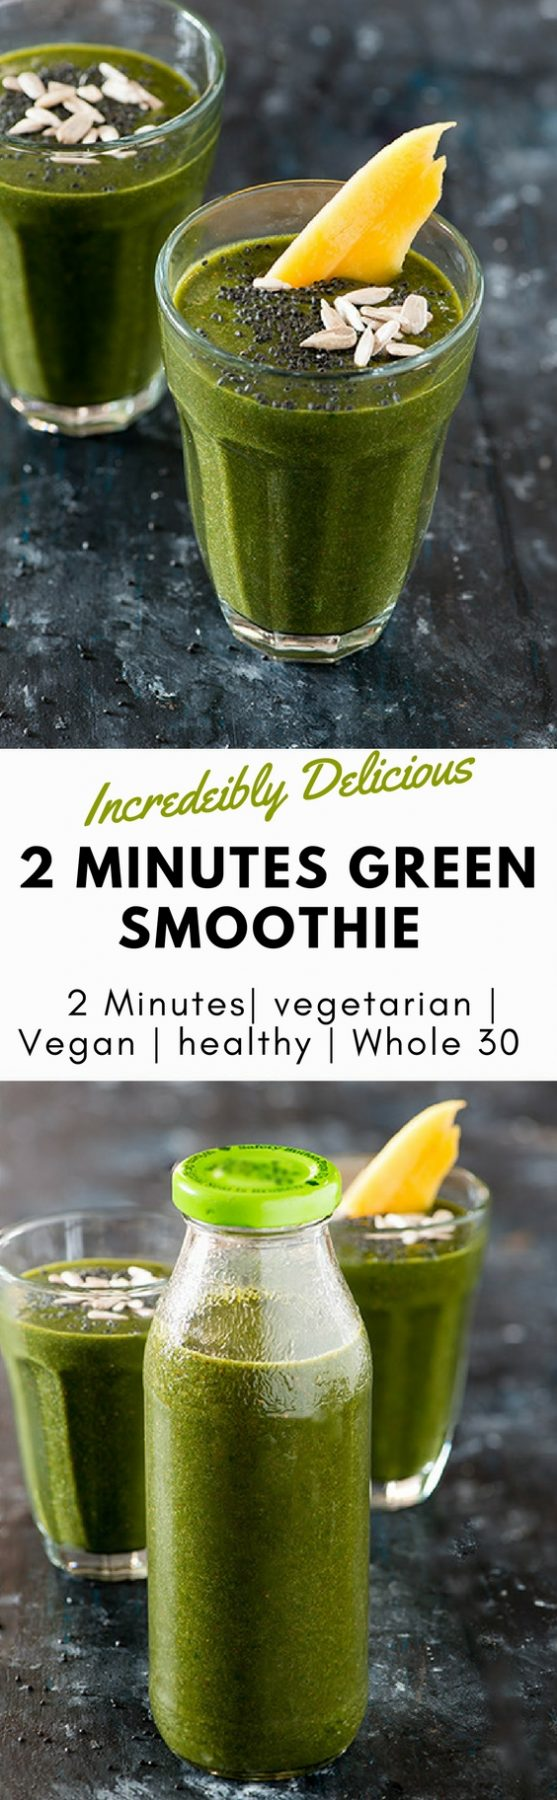 This Green Smoothie recipe is perfect start of a busy morning. All it takes is 2 Minutes to blend it if you have already prepped your ingredients during weekend meal prep. If you are planning a green smoothie cleanse or Green smoothie detox or whole 30 this is perfect vegetable smoothie recipe for you #WHOLE30 #vegan